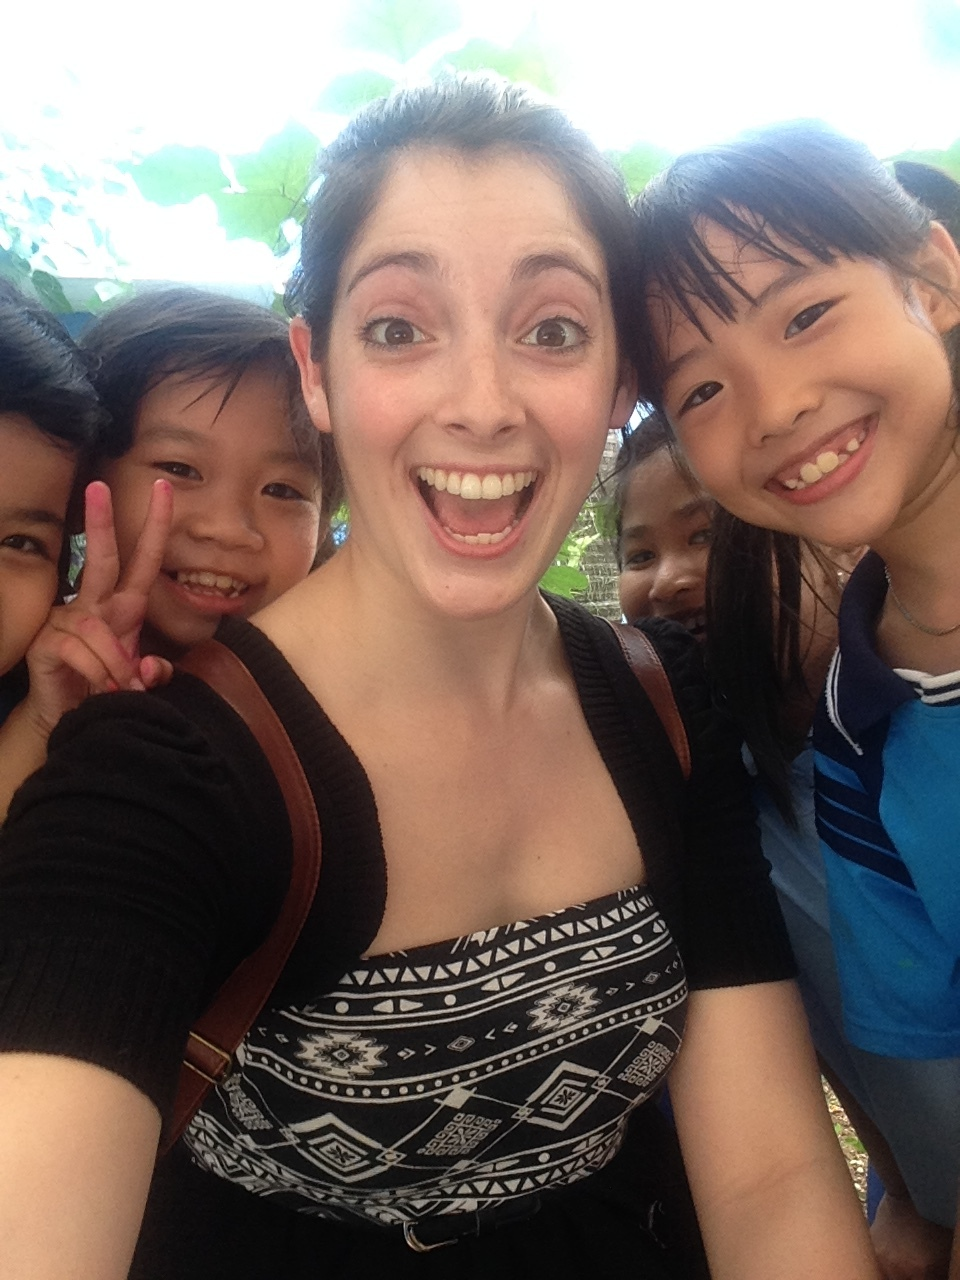 Me being a sweaty mess with some adorable kiddos!